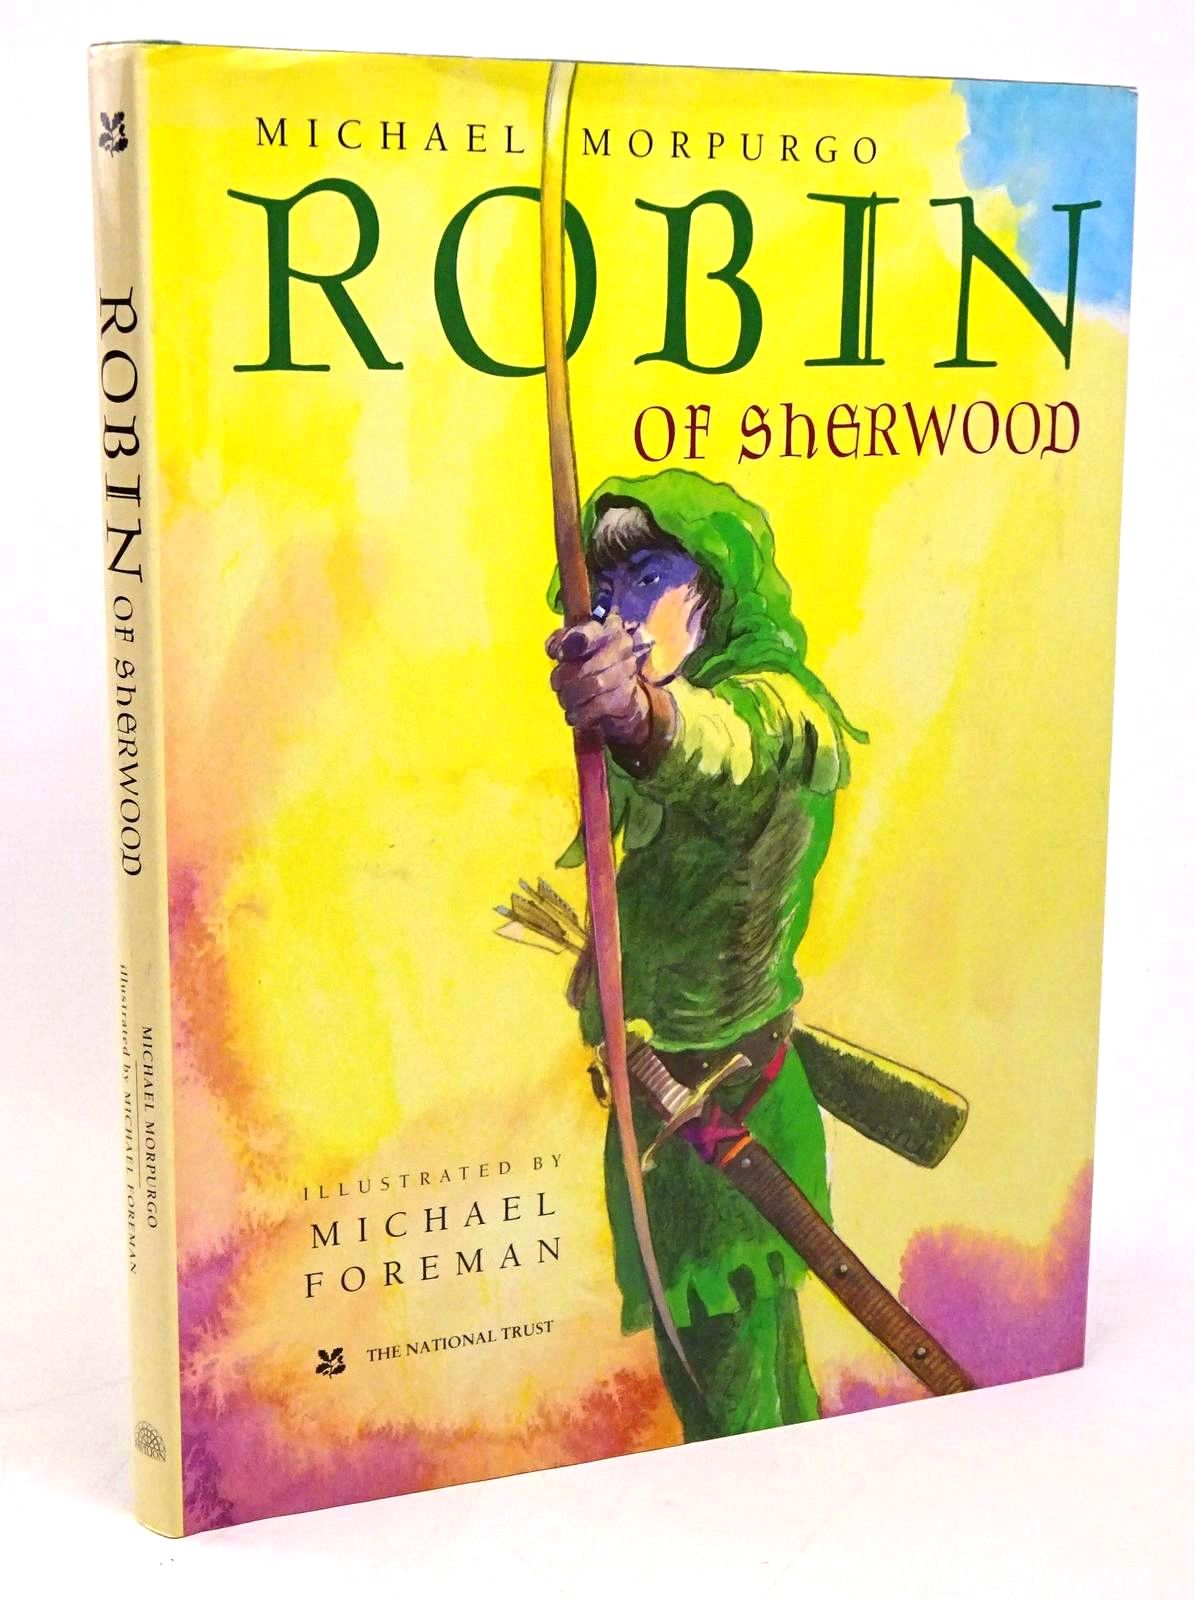 Photo of ROBIN OF SHERWOOD written by Morpurgo, Michael illustrated by Foreman, Michael published by Pavilion Books Ltd. (STOCK CODE: 1317822)  for sale by Stella & Rose's Books